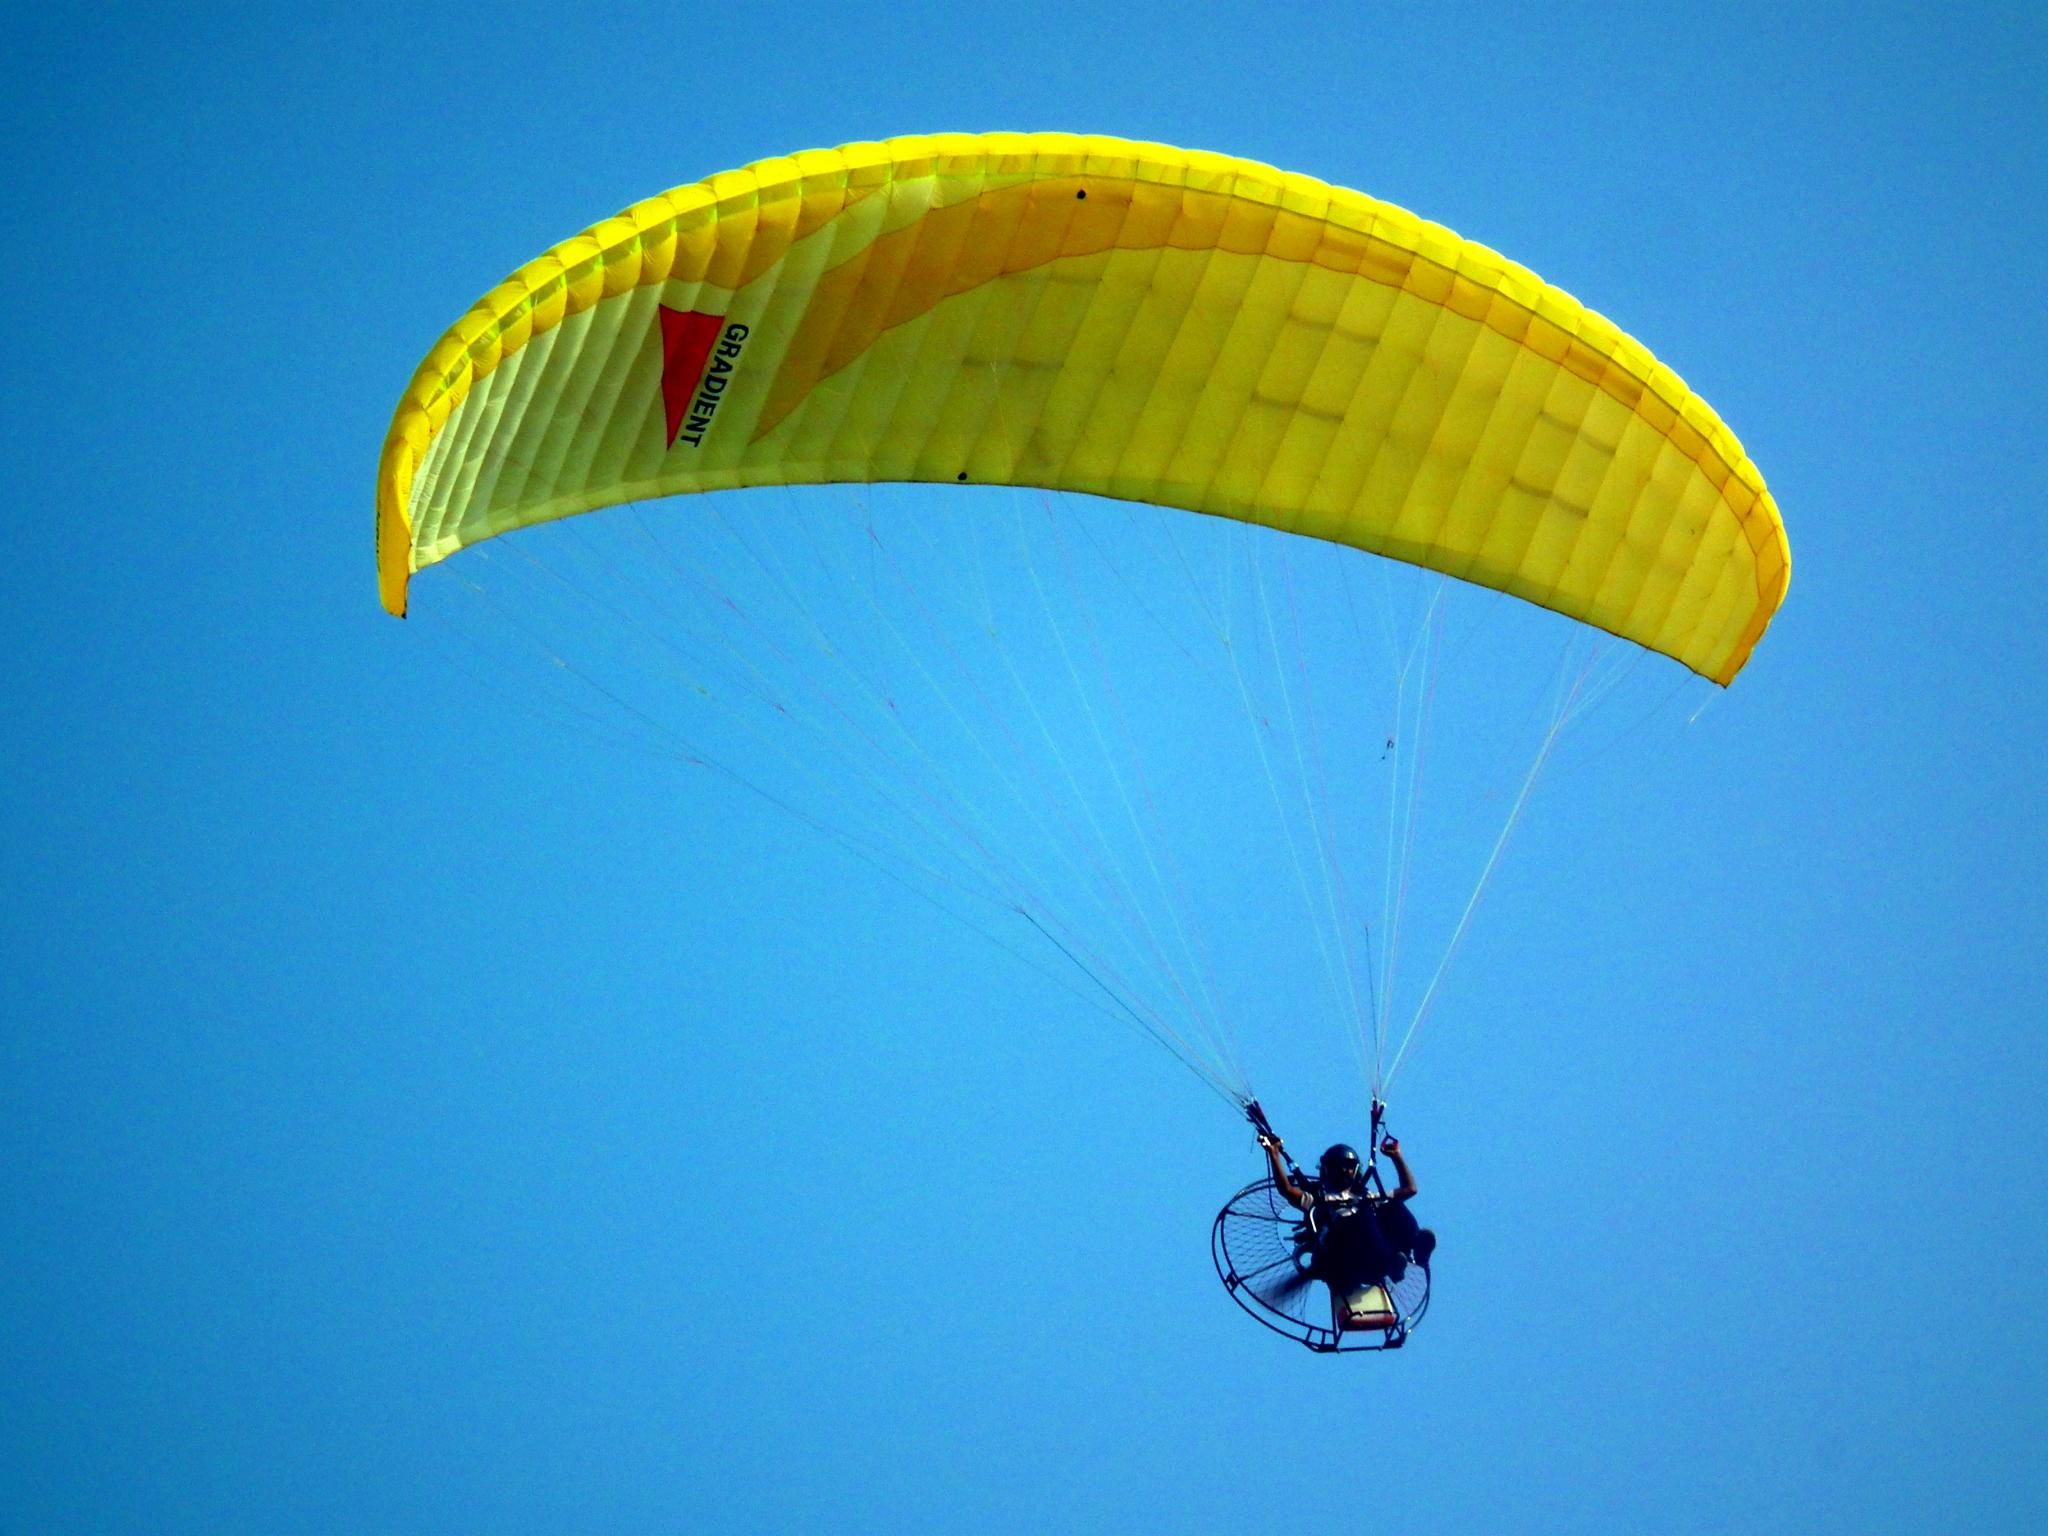 File Paraglider at Cherai Beach Kerala 1 on aircraft wallpaper